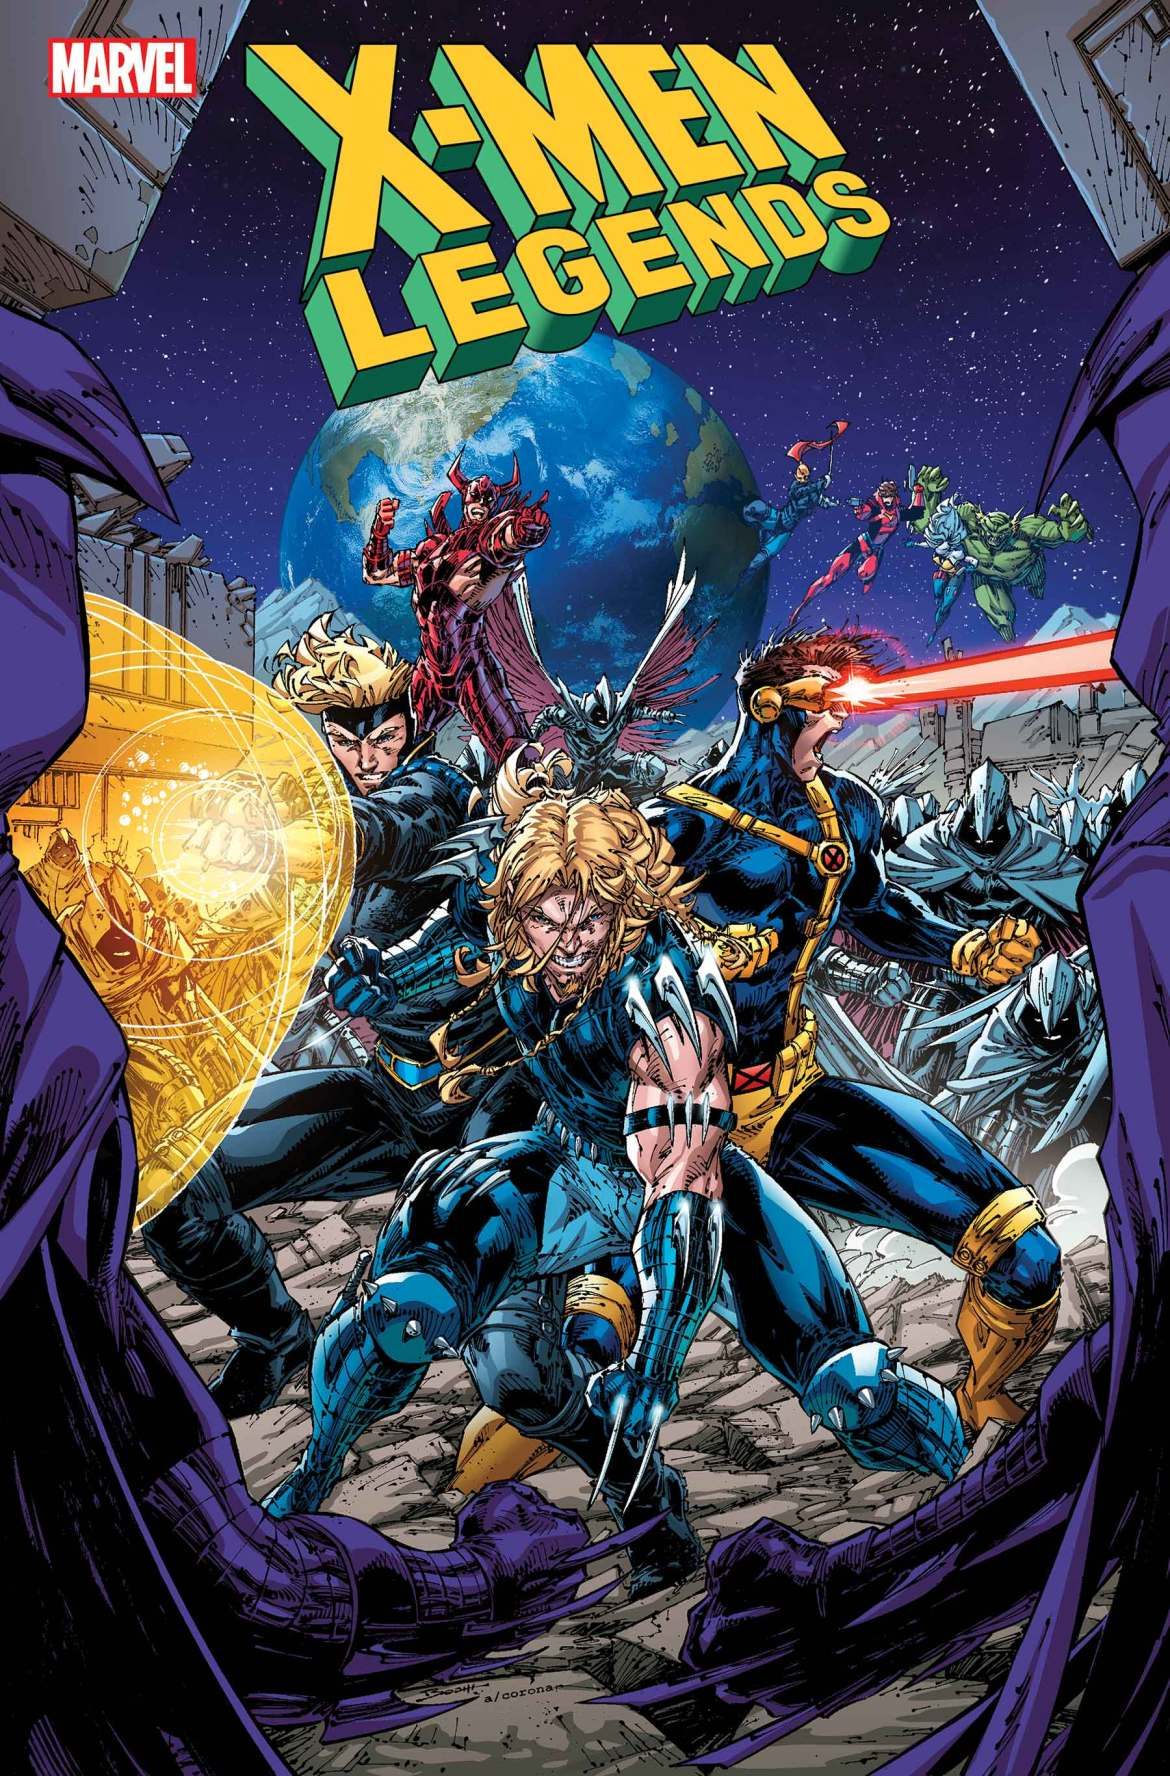 XMLEGENDS2021002_cvr_B_col Marvel Comics March 2021 Solicitations